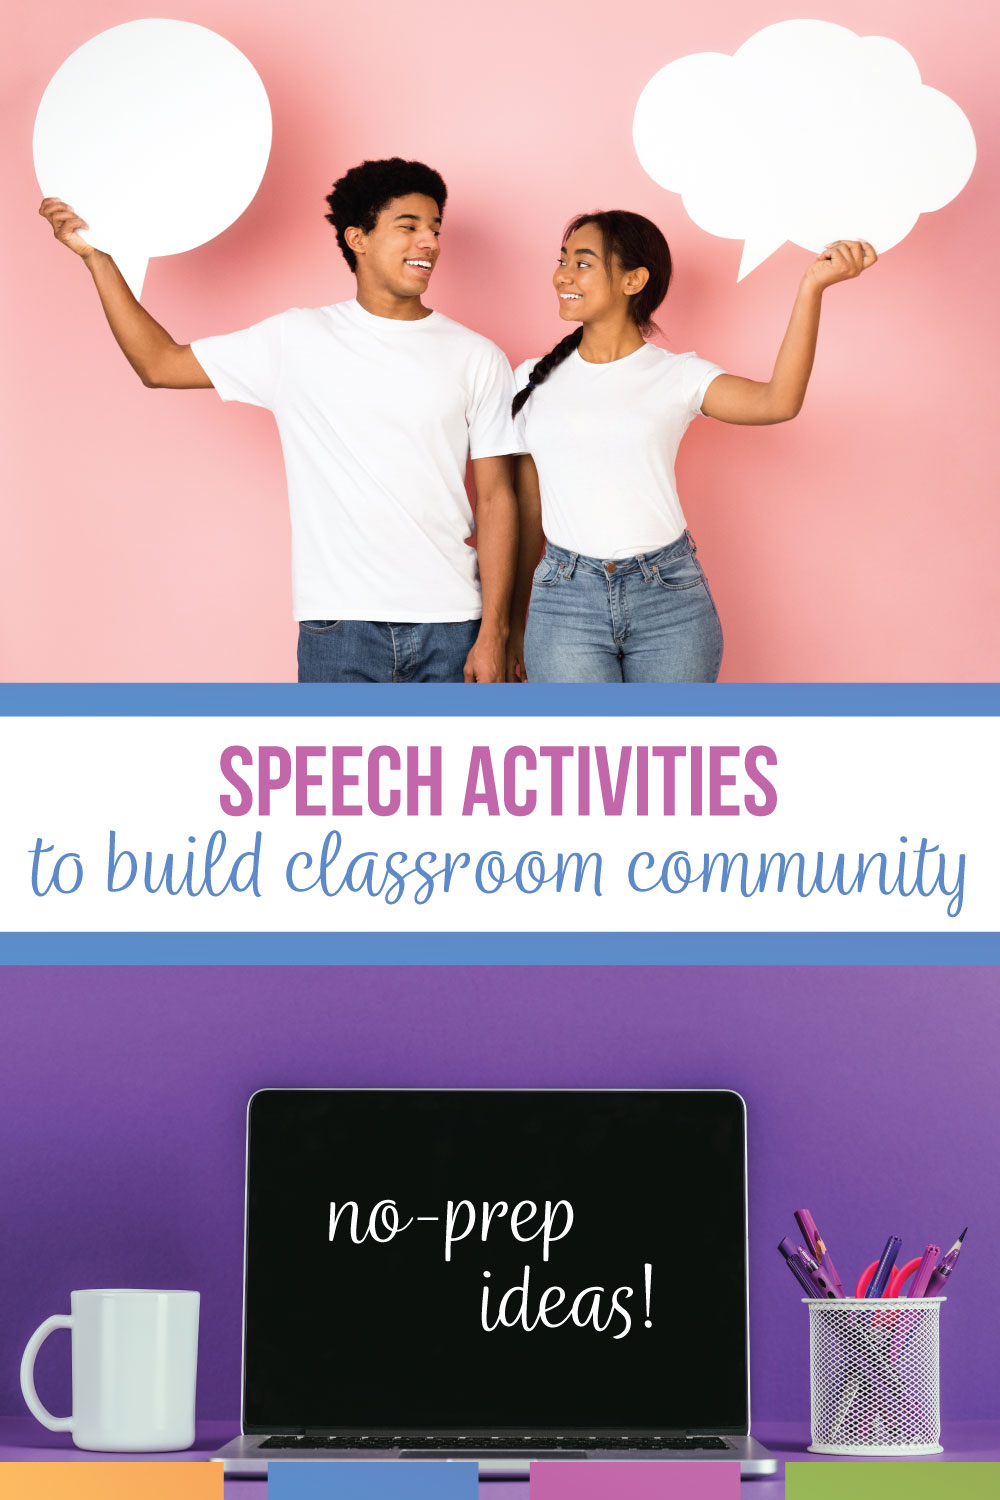 Public speaking lessons can build a classroom community with trust & engaging speech activities. A speaking lesson plan can be simple with no prep for the language arts teacher. Speech lesson plans should provide an opportunity for reflection & growth. Make speech class lessons meaningful with these public speaking ideas.